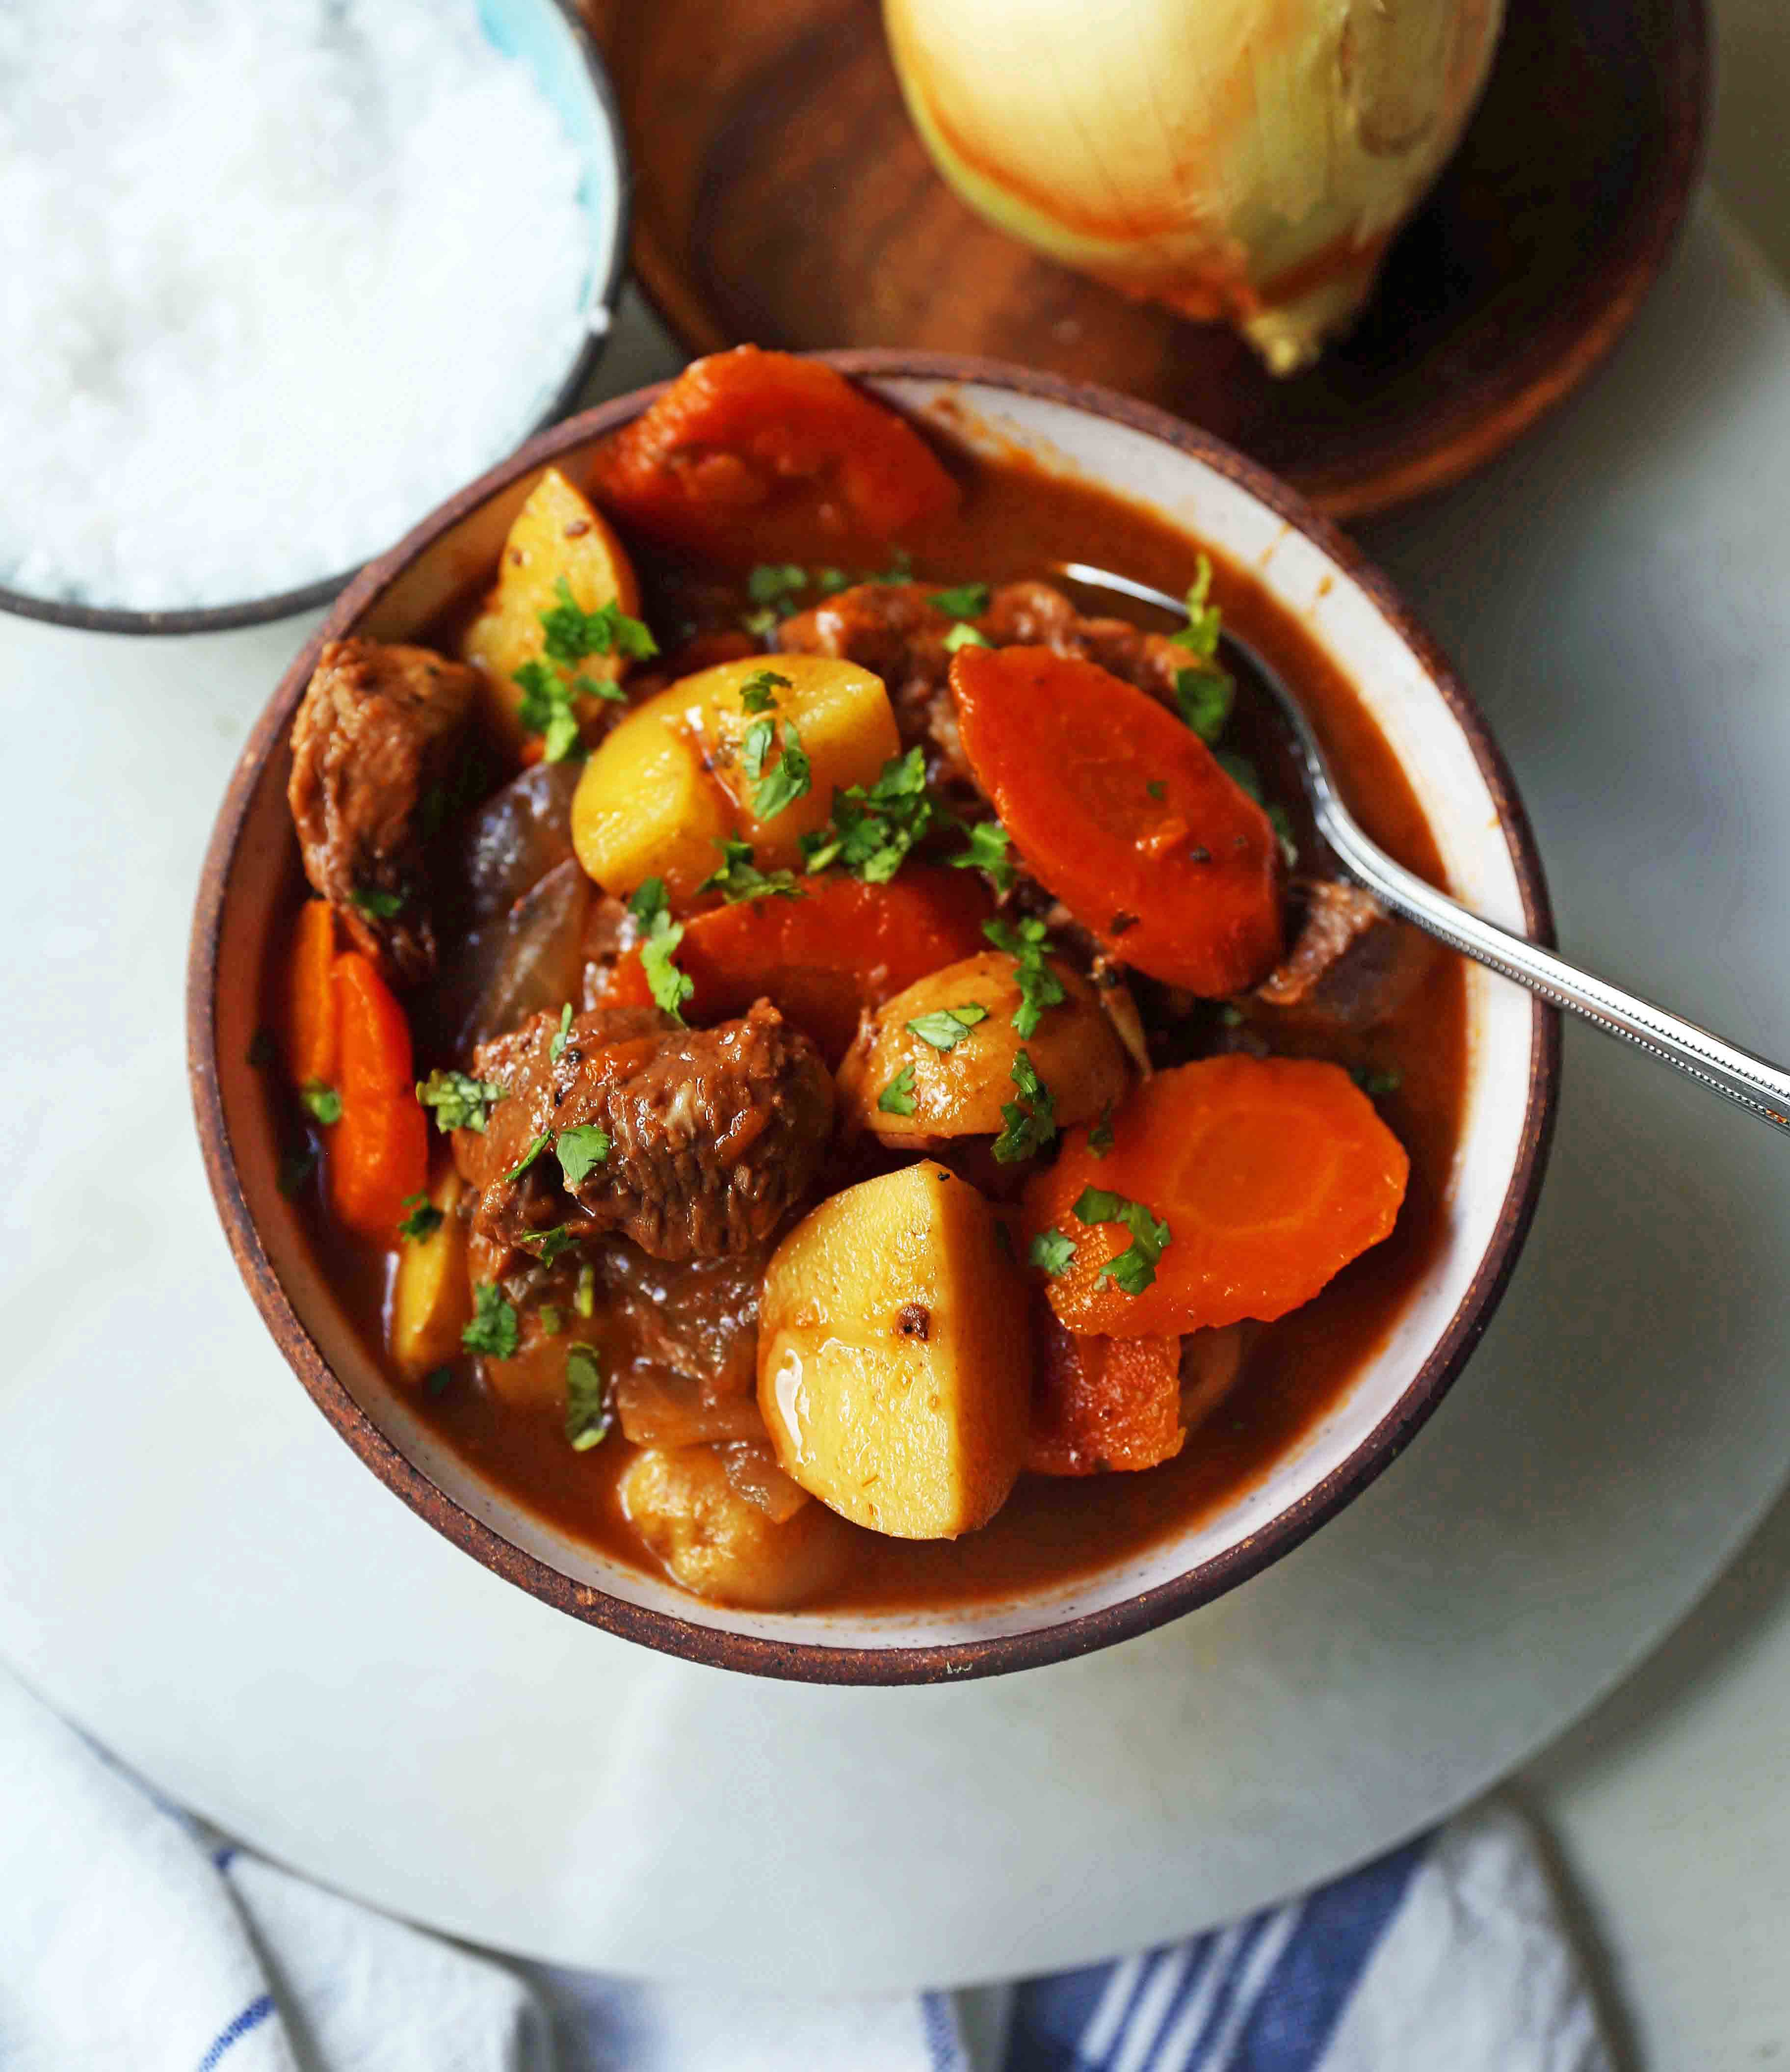 Hearty Beef Stew Recipe is the ultimate comfort food. A healthy beef stew recipe using lean beef, yukon gold potatoes, carrots, onions, in a rich broth. The perfect beef stew recipe! www.modernhoney.com #beefstew #beefstewrecipe #beefsoup #homemadebeefstew #comfortfood #Kroger